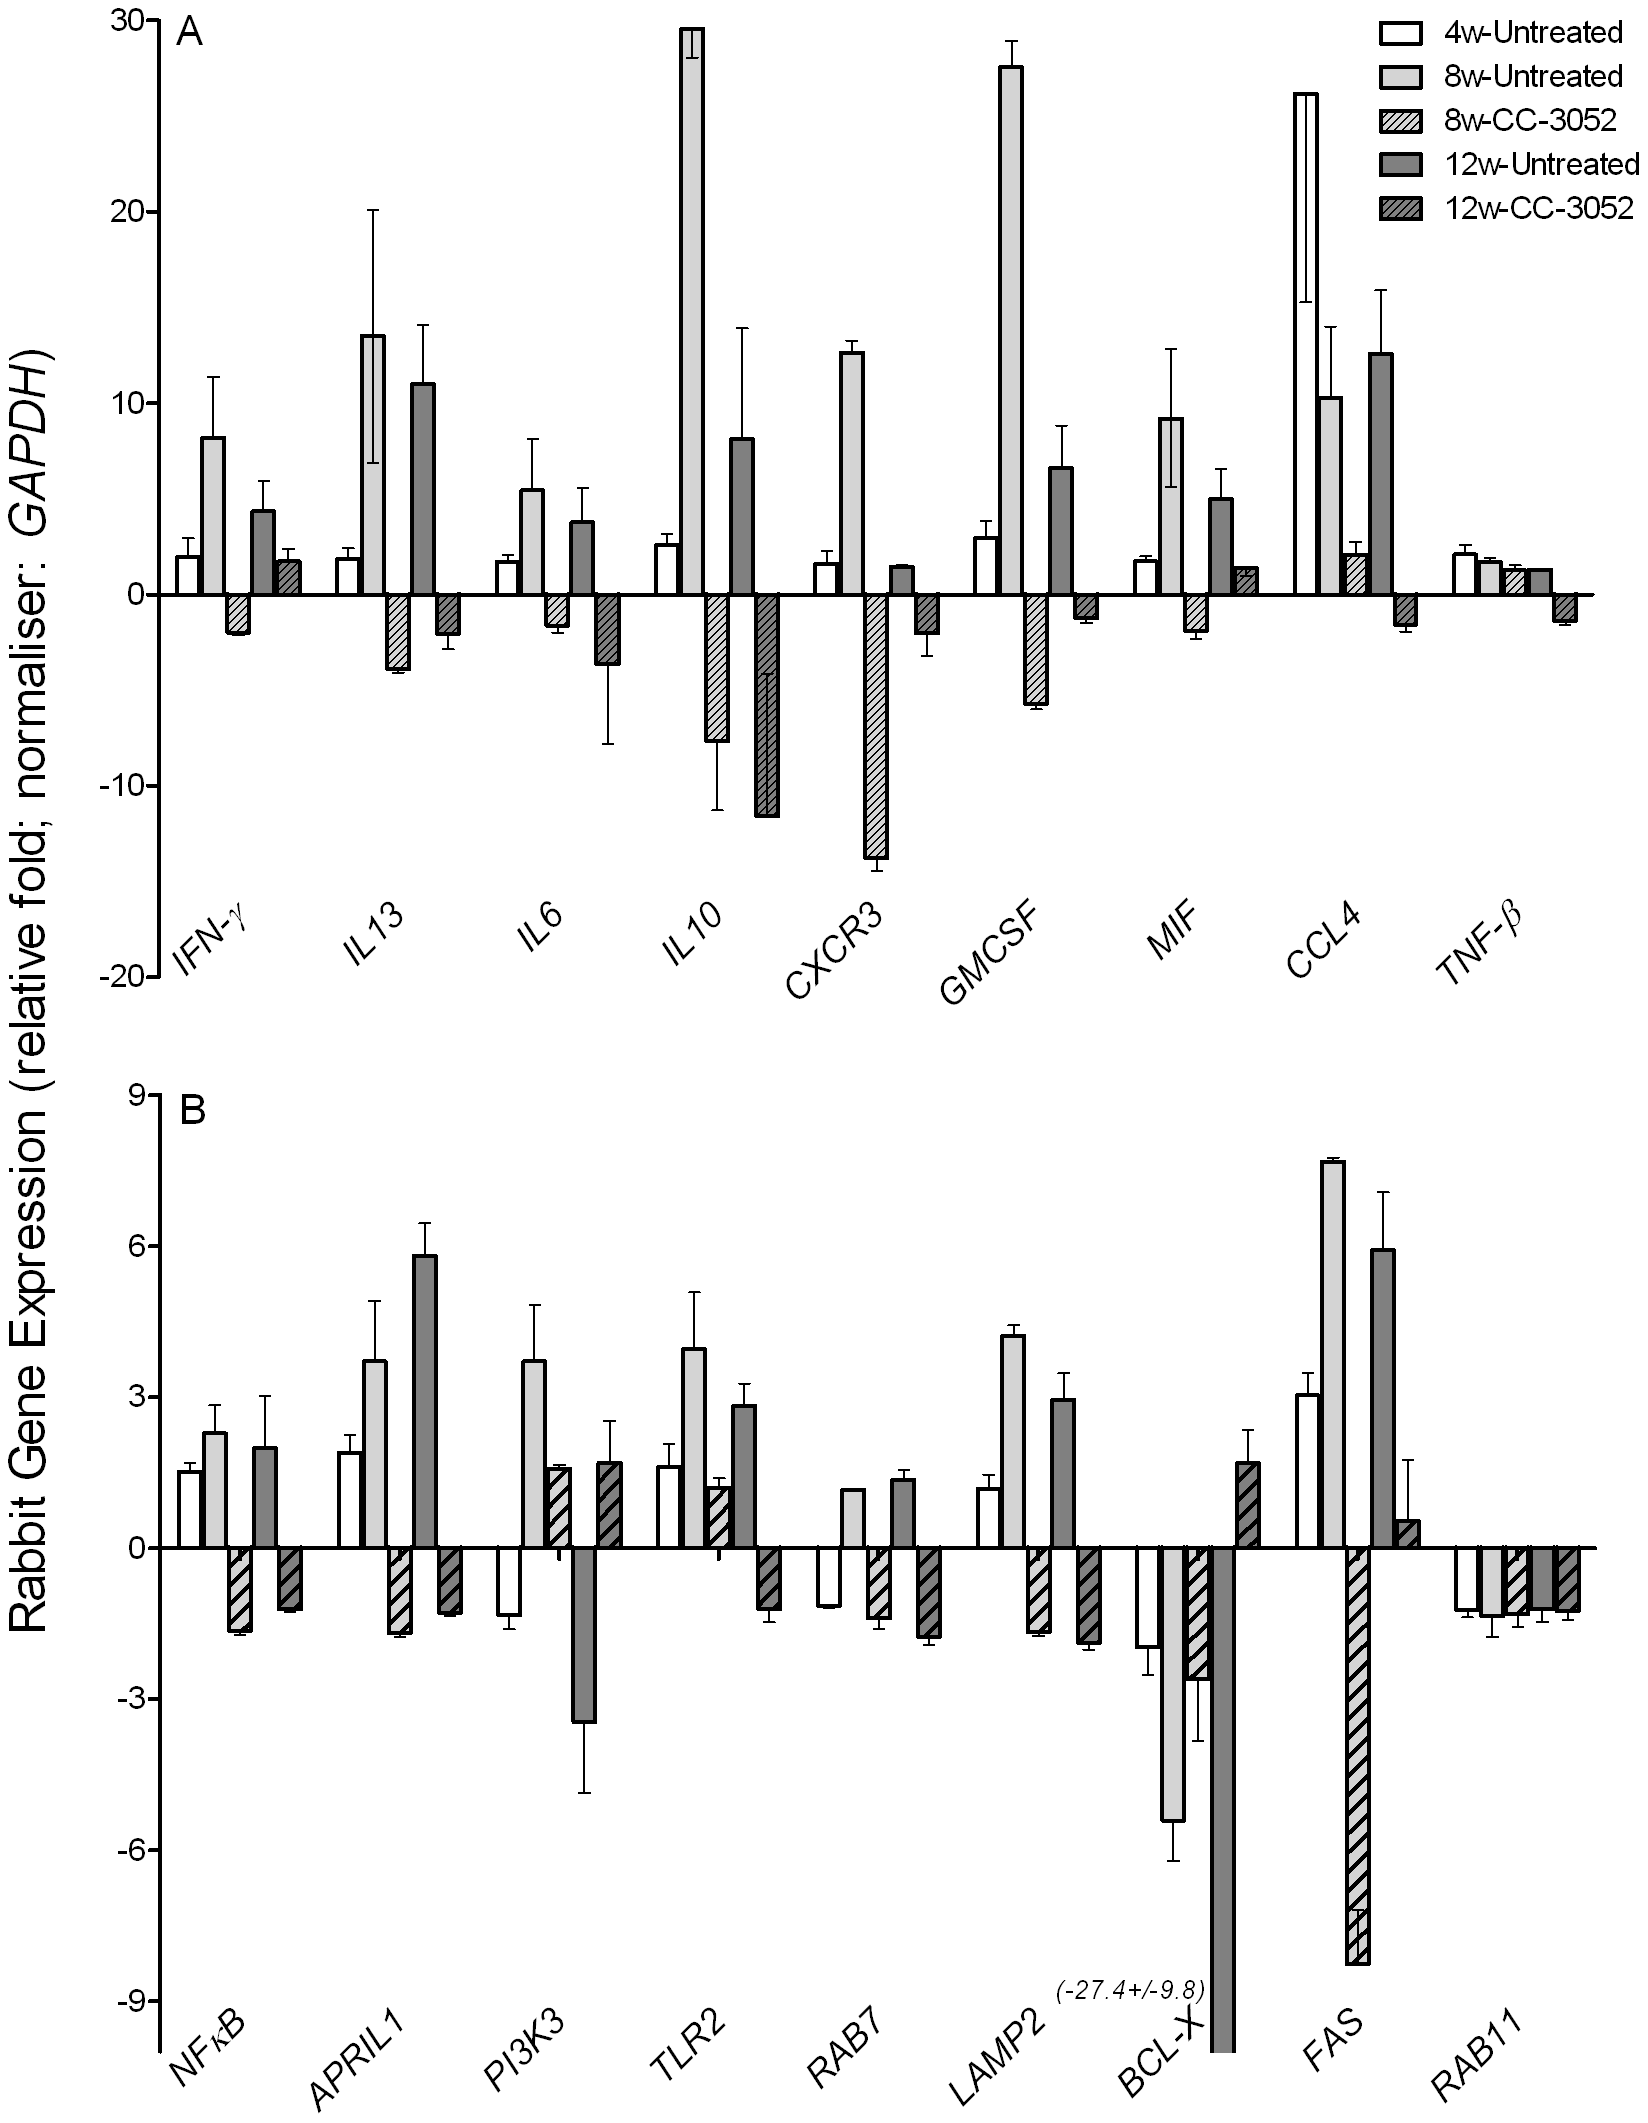 Effect of CC-3052 treatment on rabbit gene expression during <i>Mtb</i> infection.